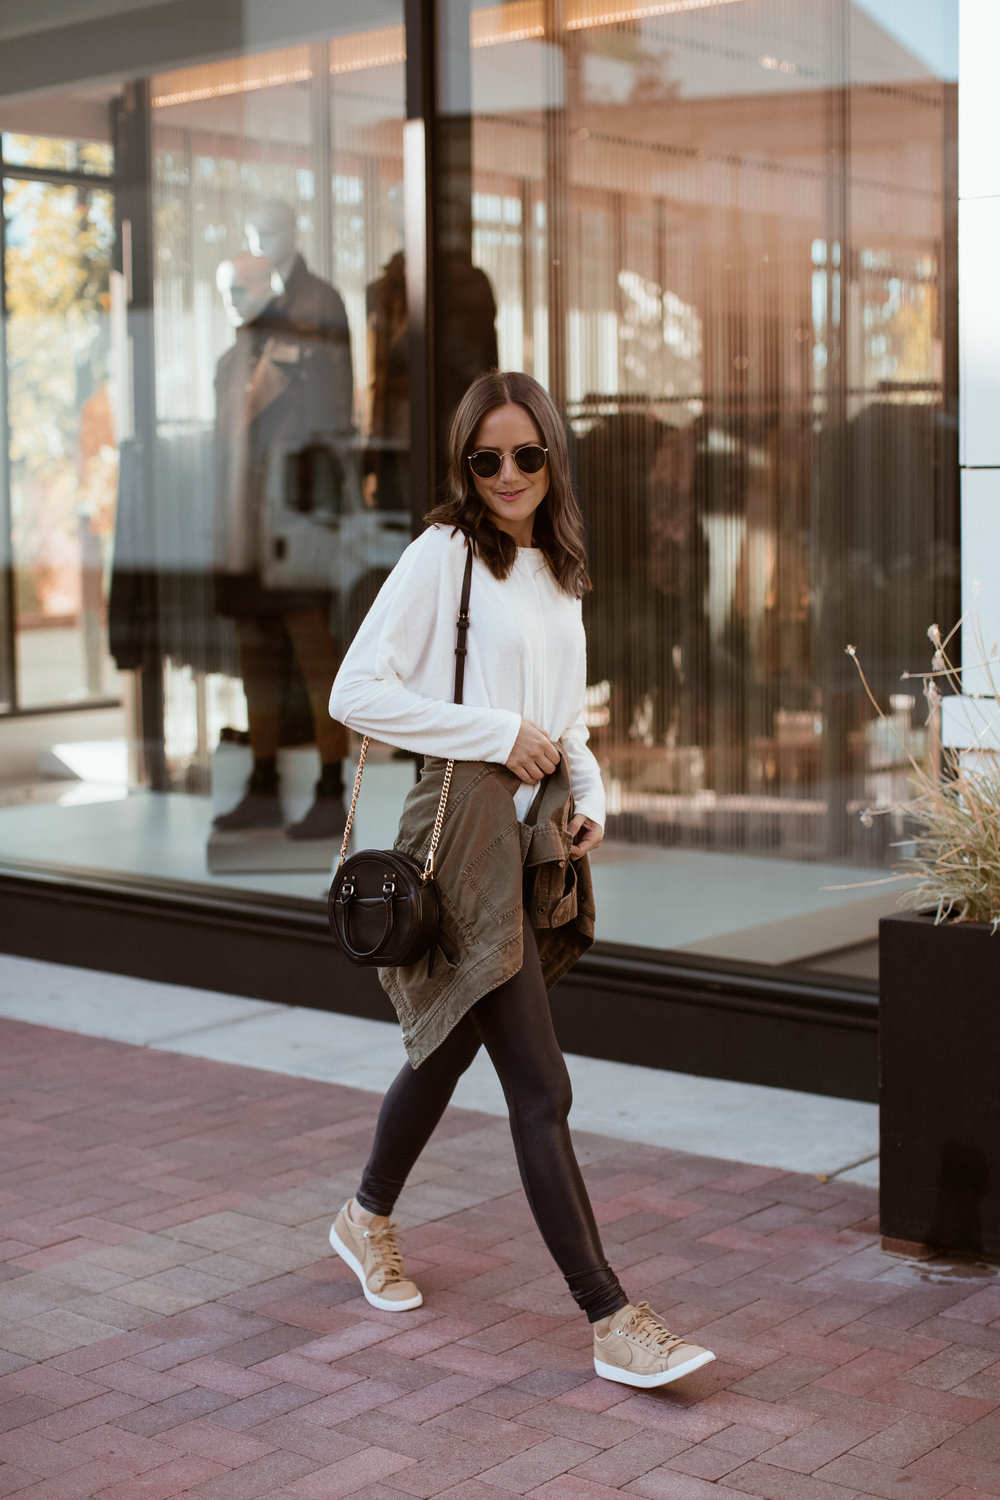 Shop the Look Below.  Nordstrom Rack Sweater  | Spanx Leggings  HERE  and  HERE  |  Nike Sneakers  last seen in stock and on sale  HERE  |  Madewell Jacket  |  Rebecca Minkoff Bag  |  Ray-Ban Sunglasses